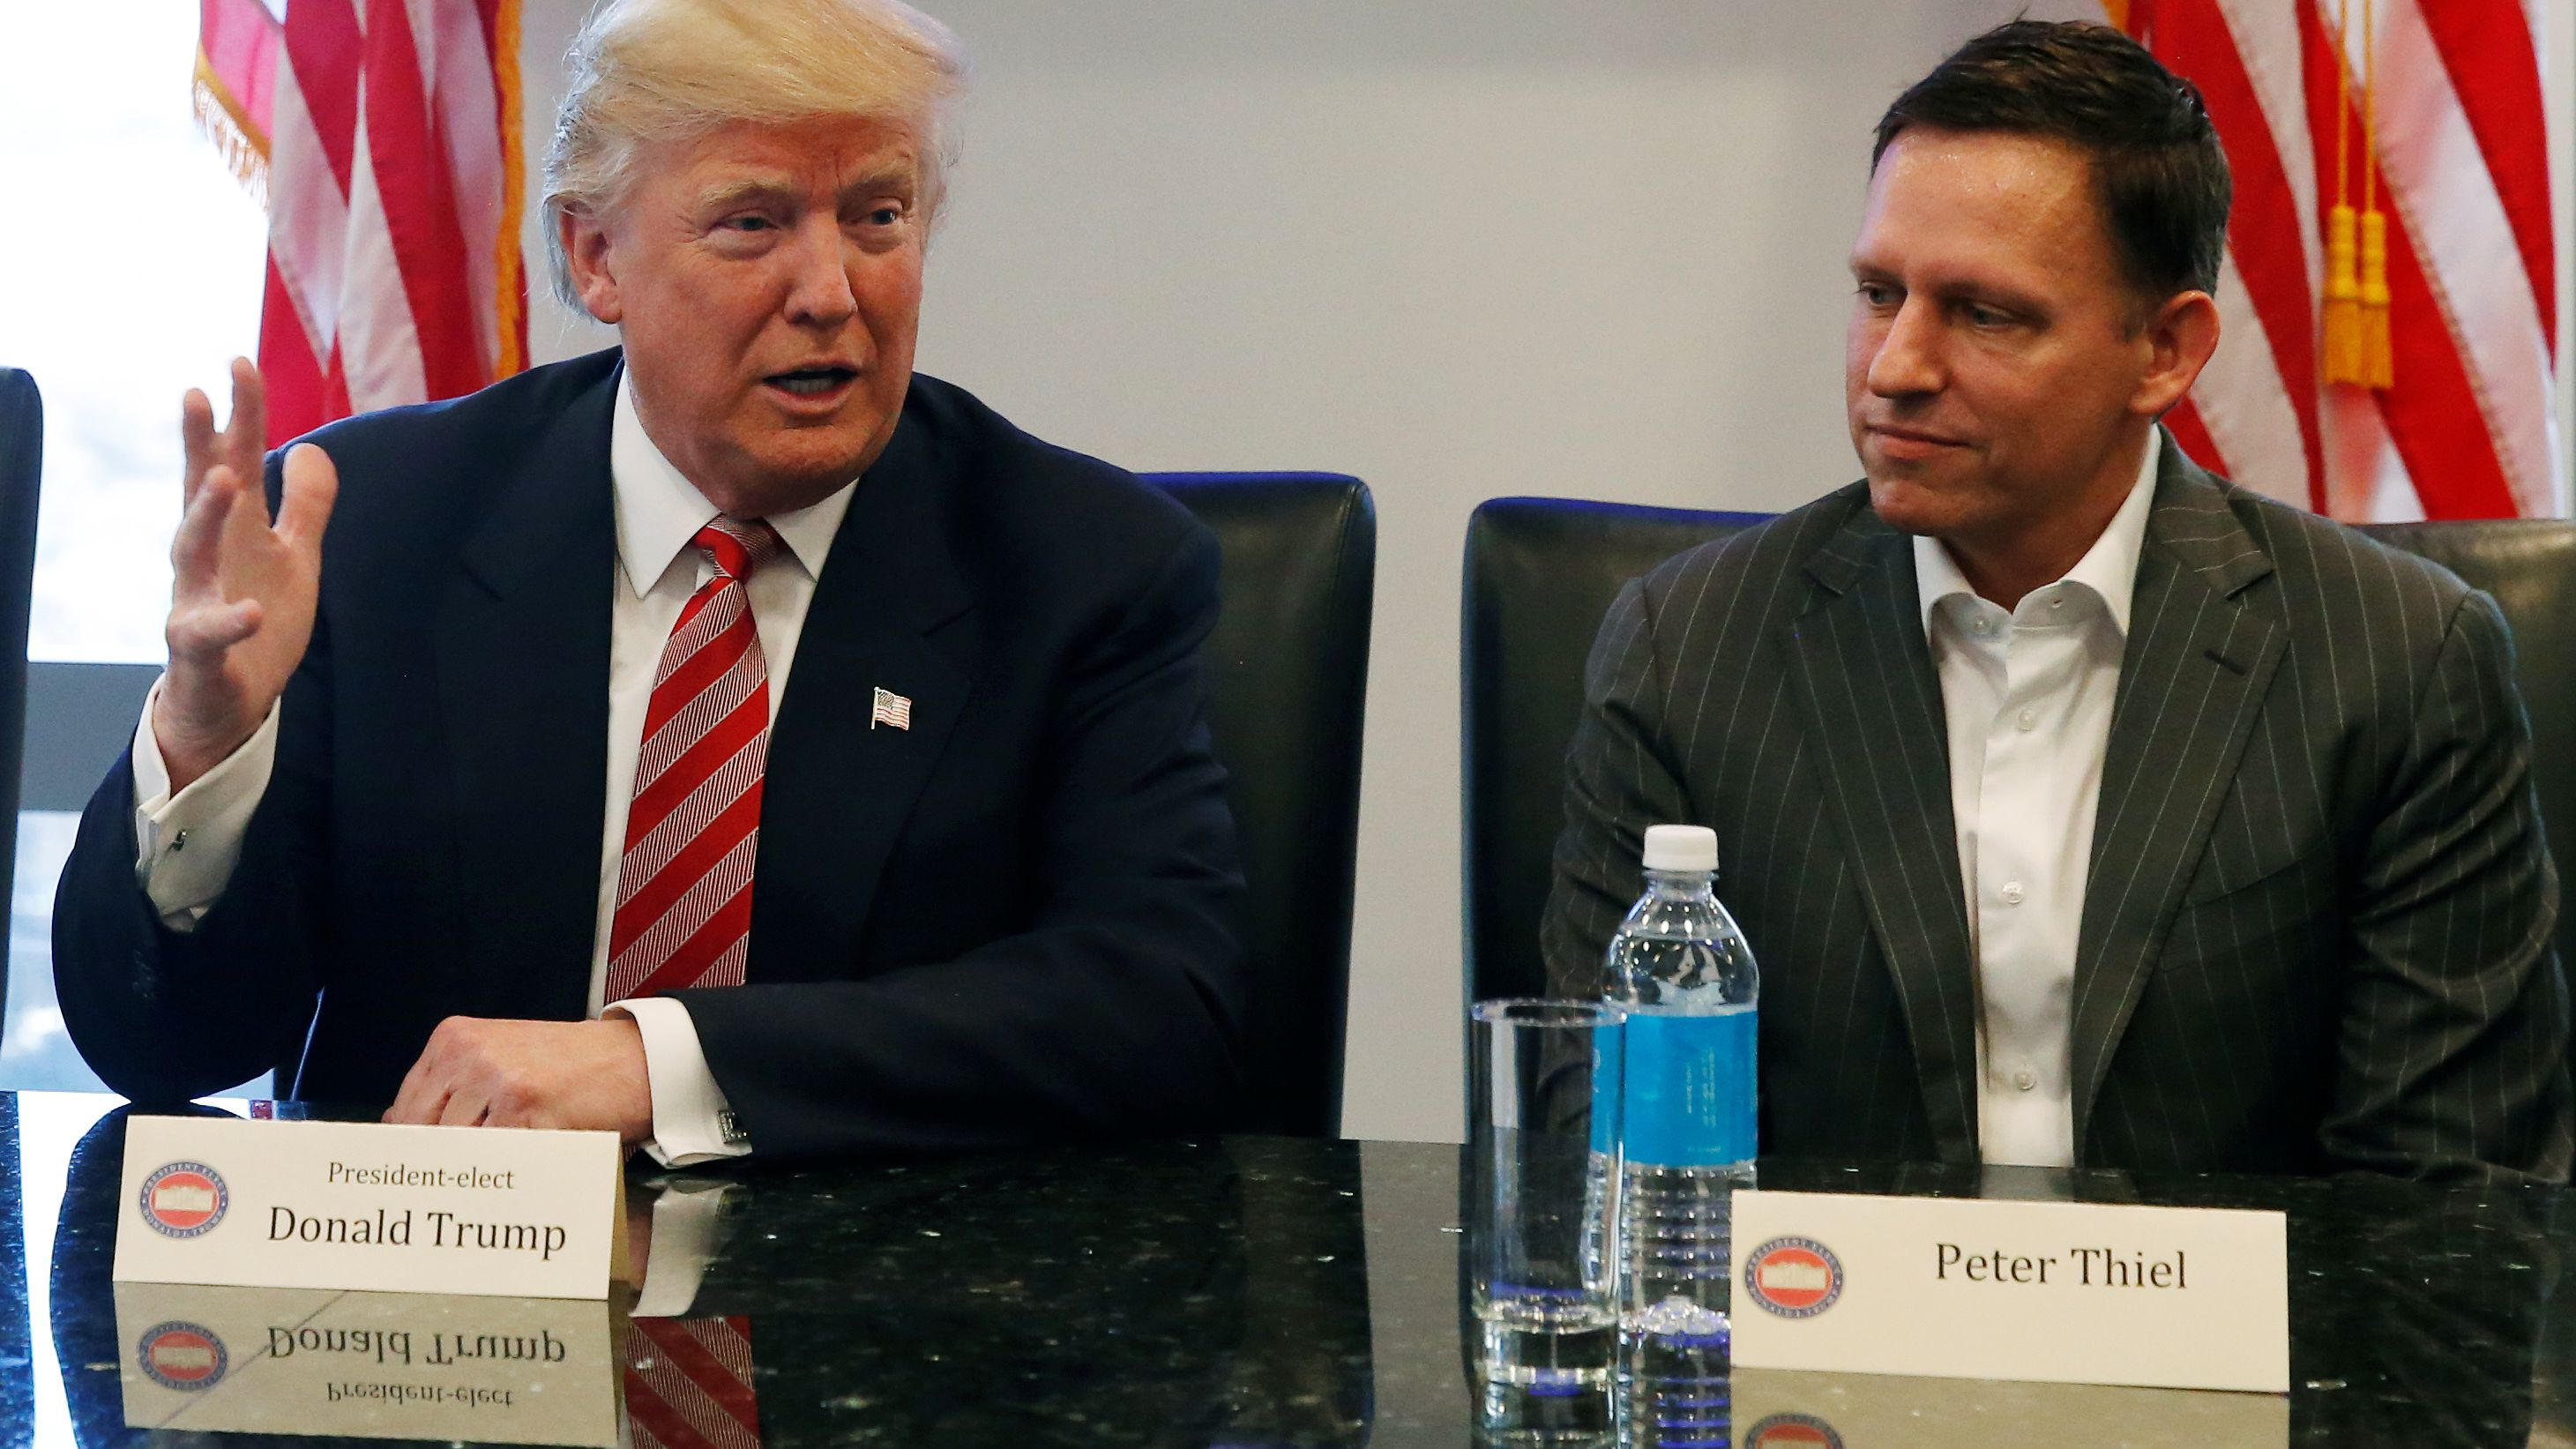 U.S. President-elect Donald Trump sits with PayPal co-founder and Facebook board member Peter Thiel, during a meeting with technology leaders at Trump Tower in New York U.S., December 14, 2016. REUTERS/Shannon Stapleton